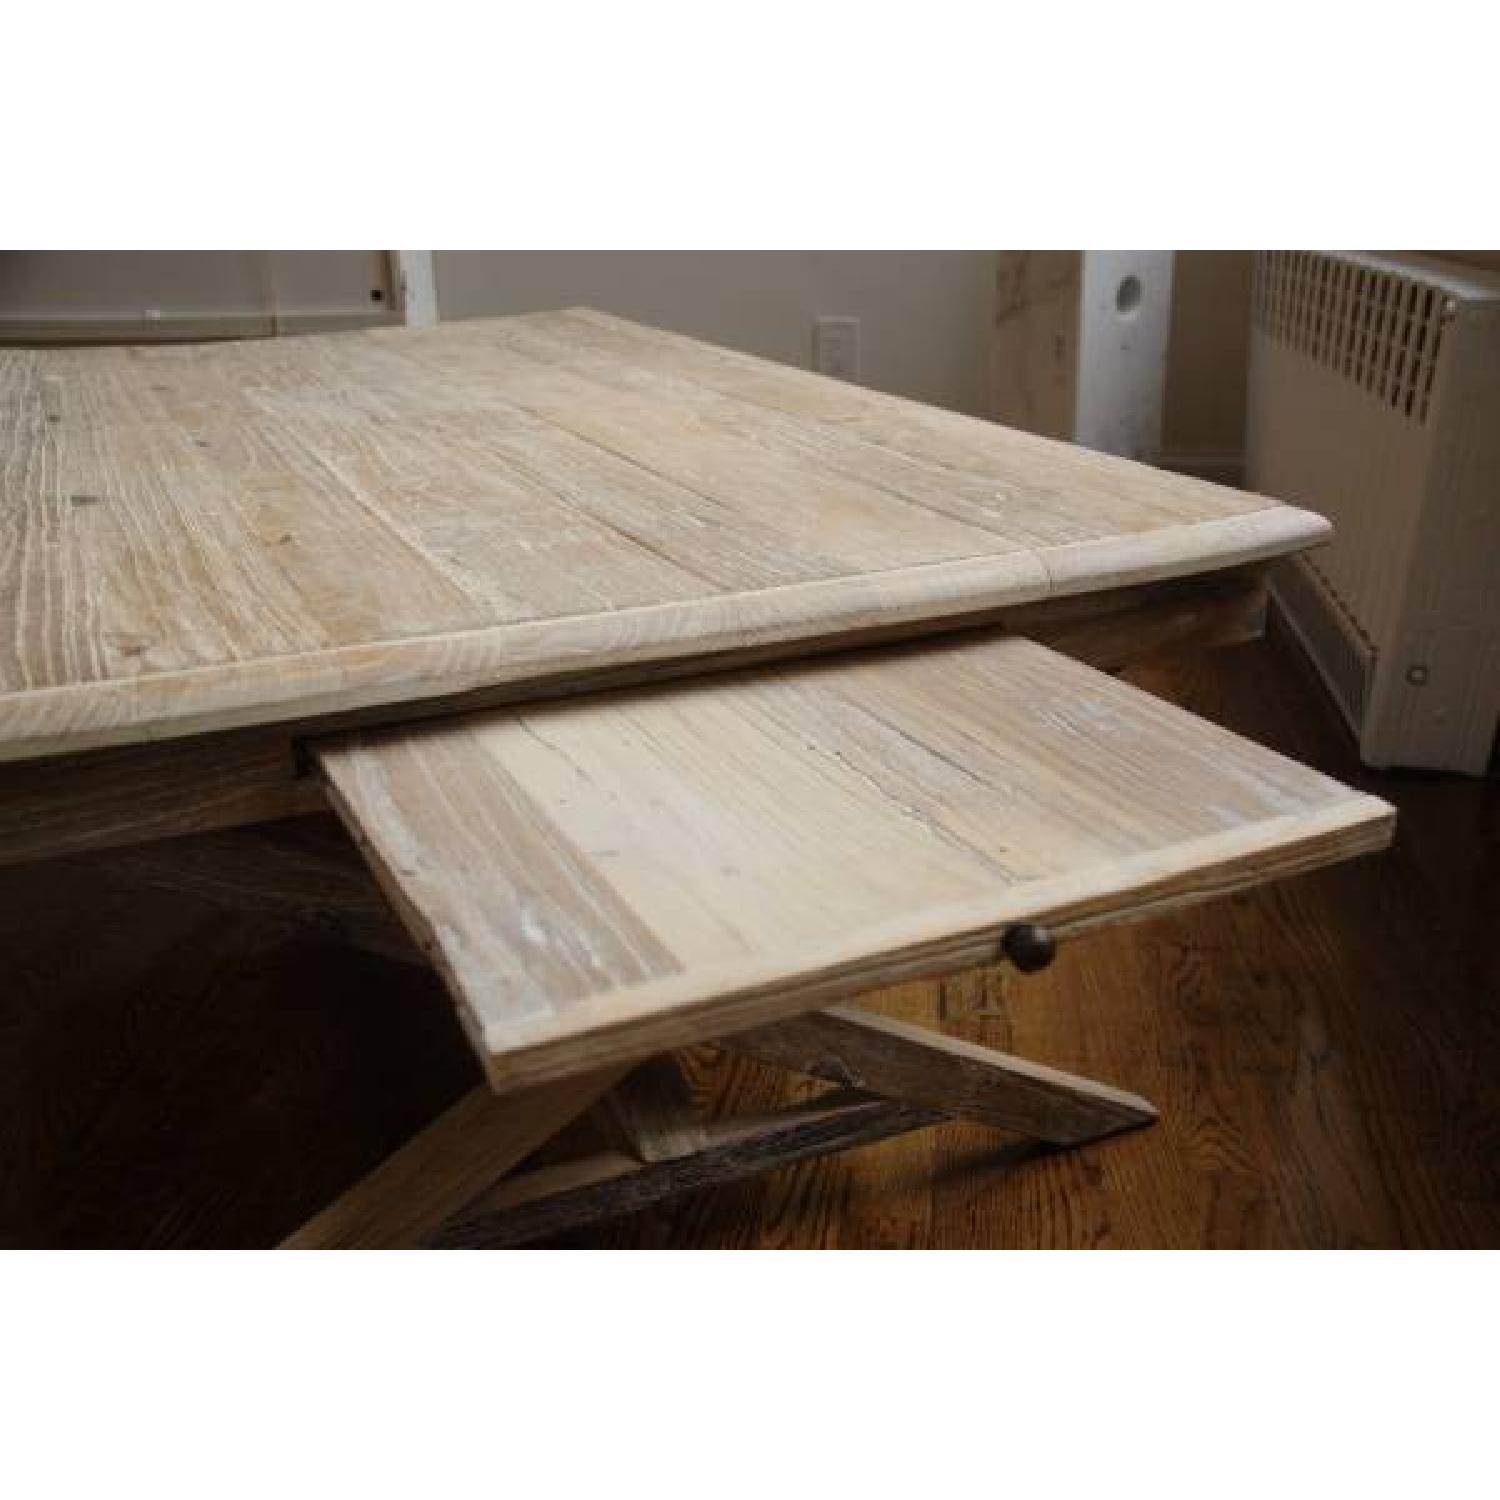 ABC Carpet & Home Handcrafted Coffee Table - image-6